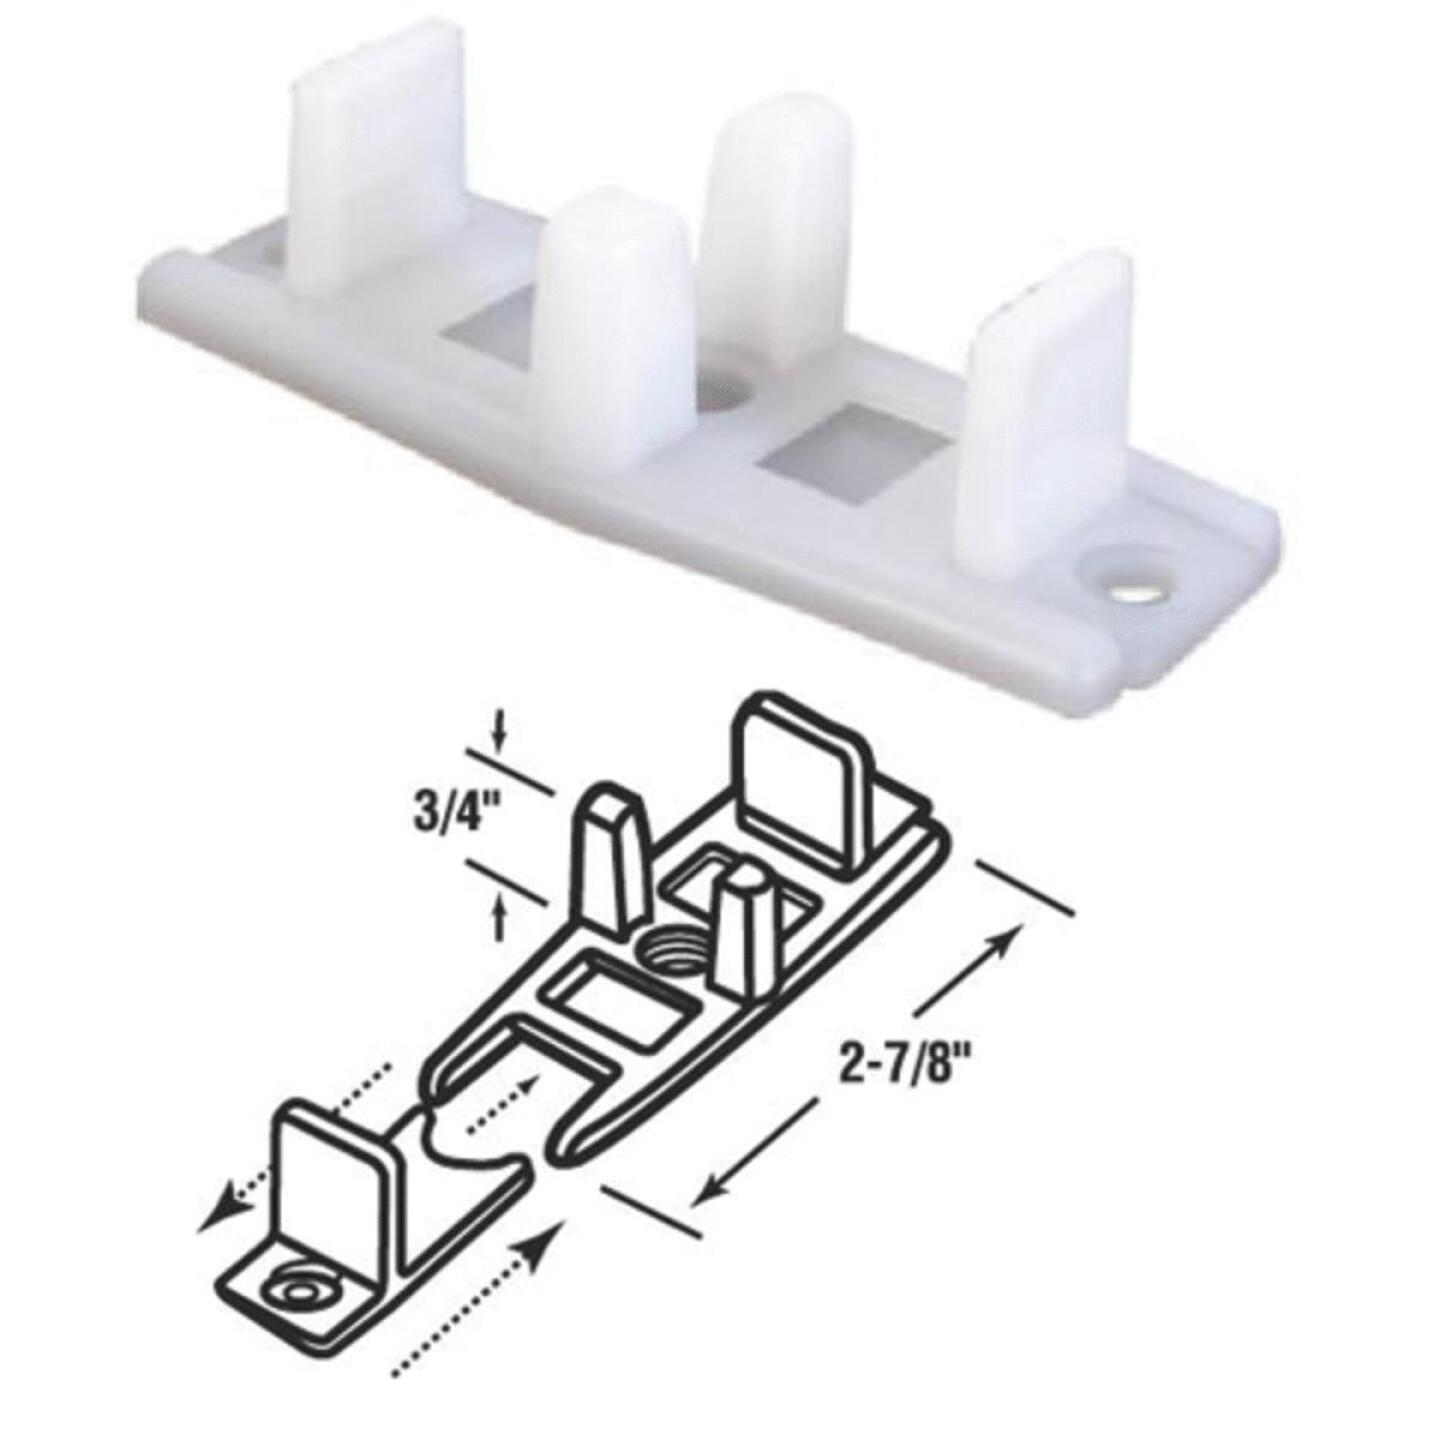 Prime-Line 3/4 In. Adjustable Nylon Base Bypass Door Bottom Guide (2 Count) Image 1